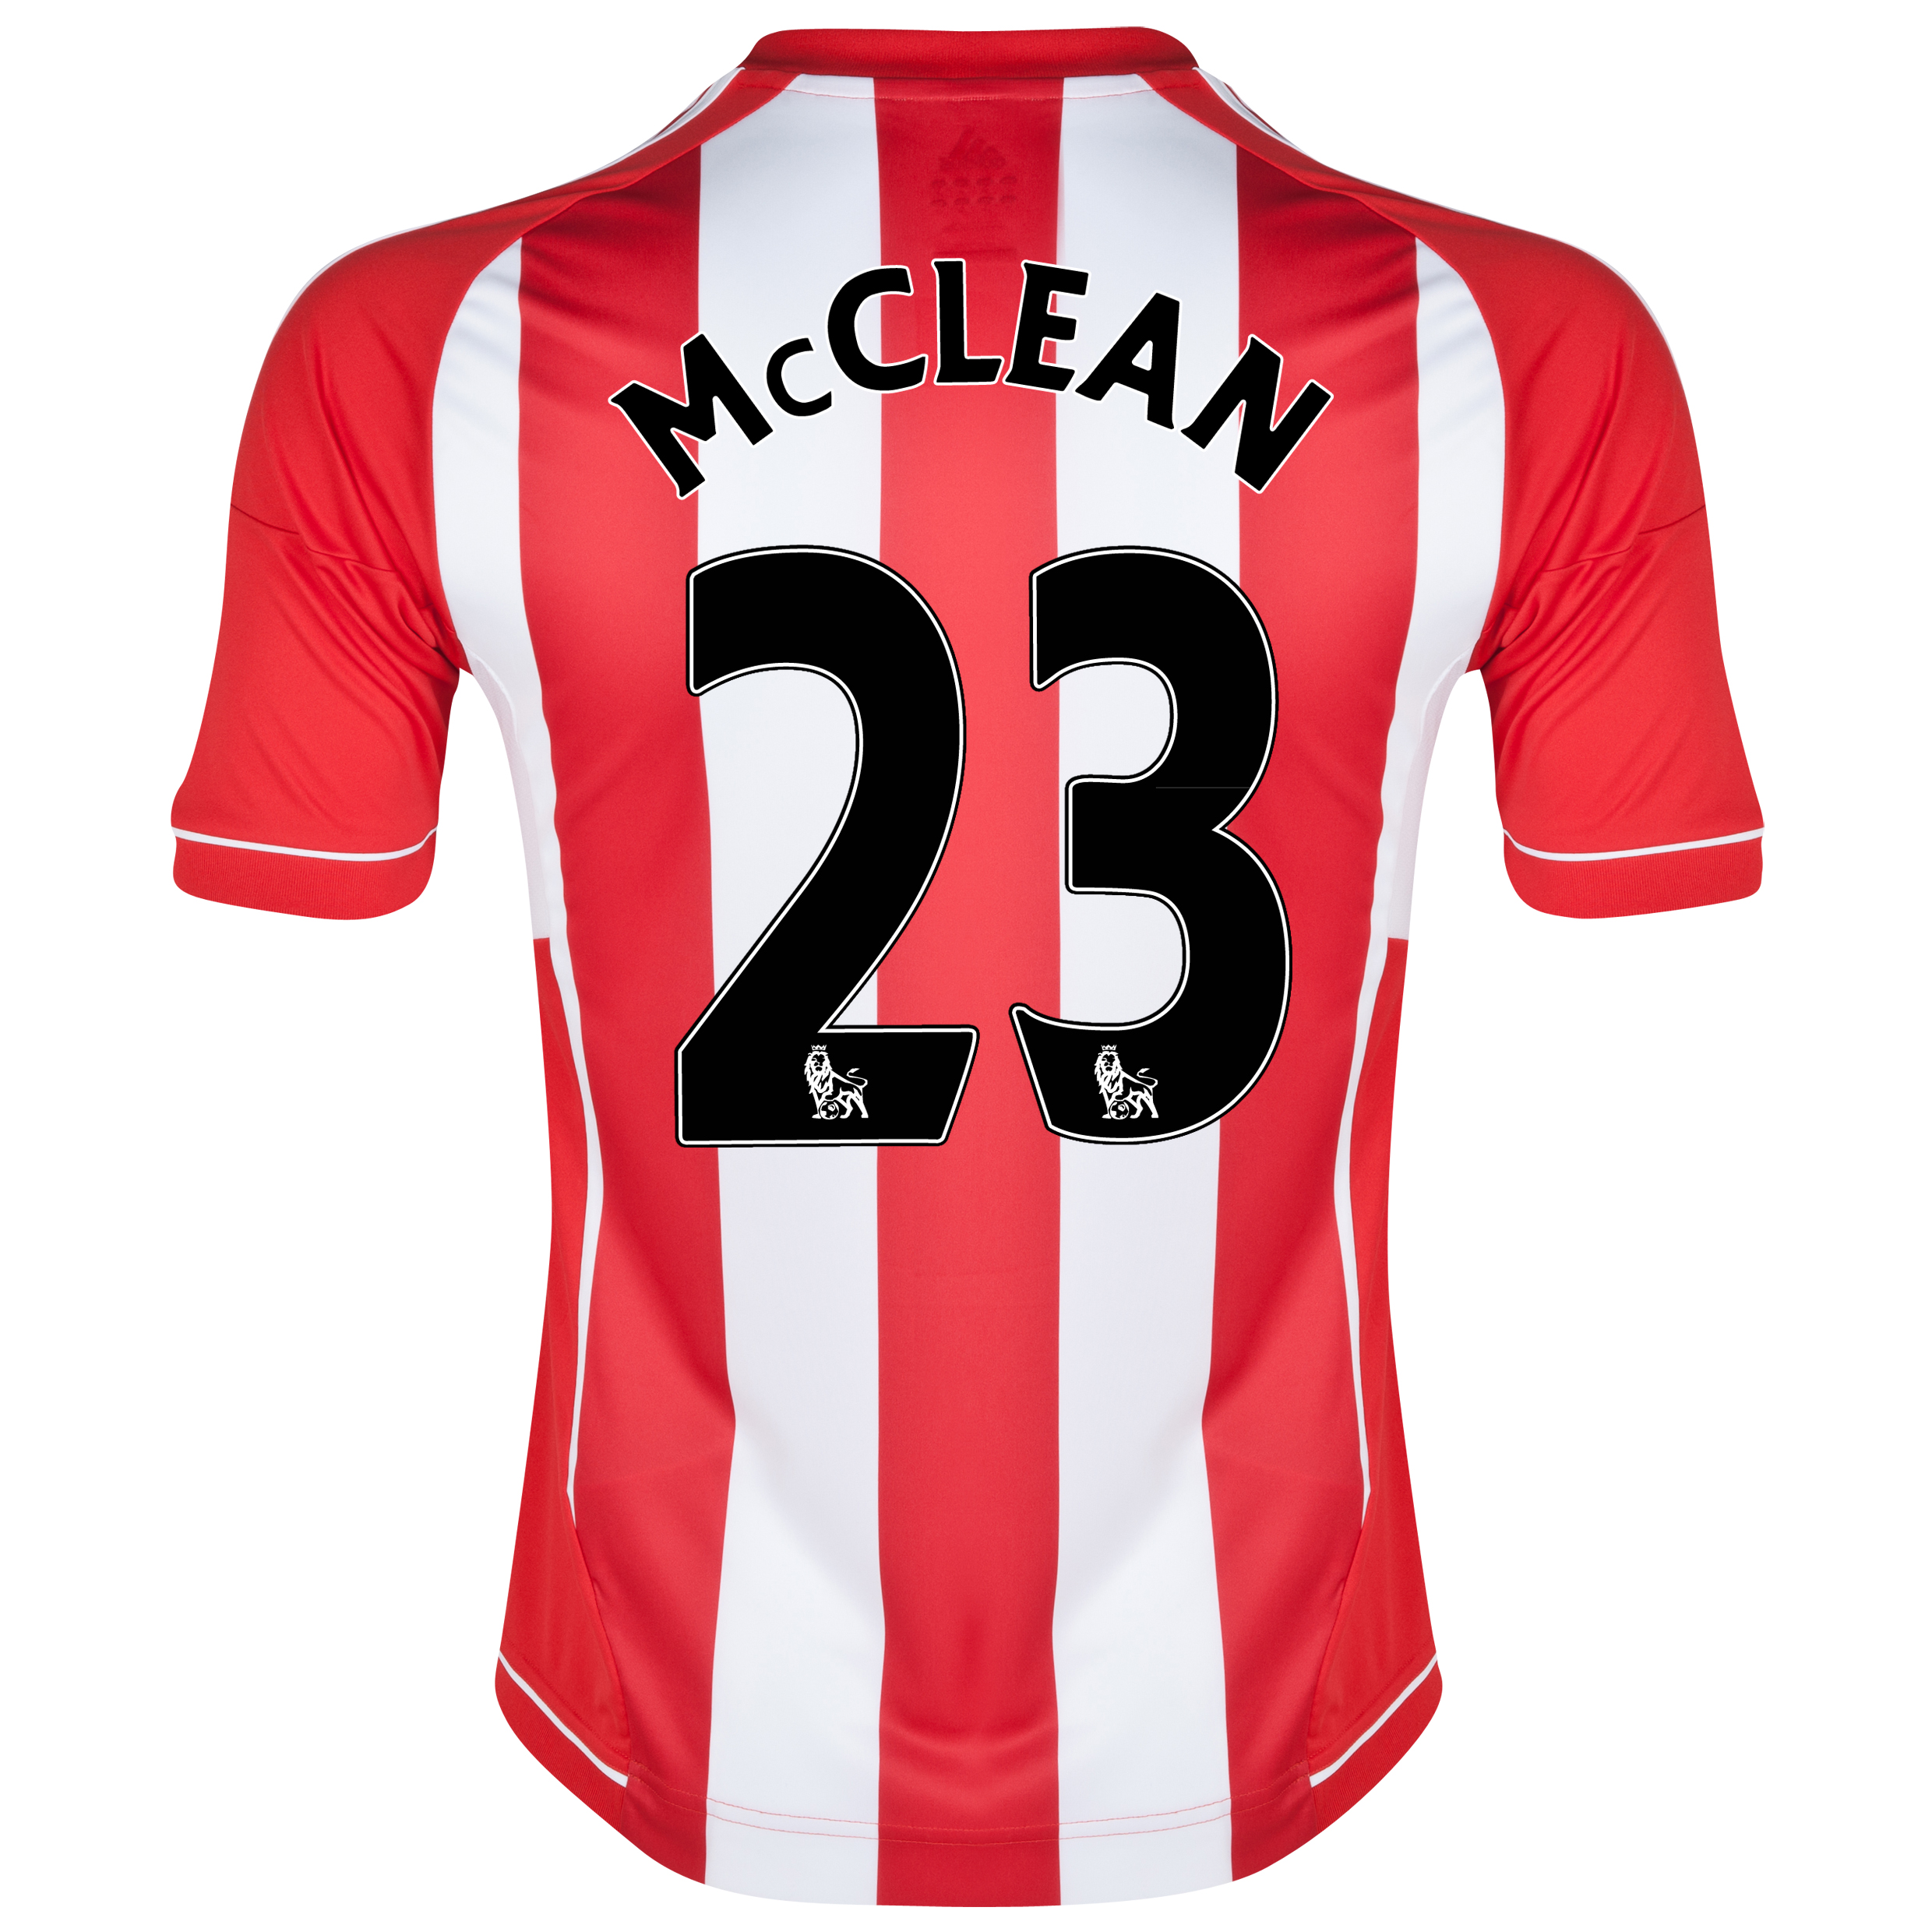 Sunderland Home Shirt 2012/13 with McClean 23 printing